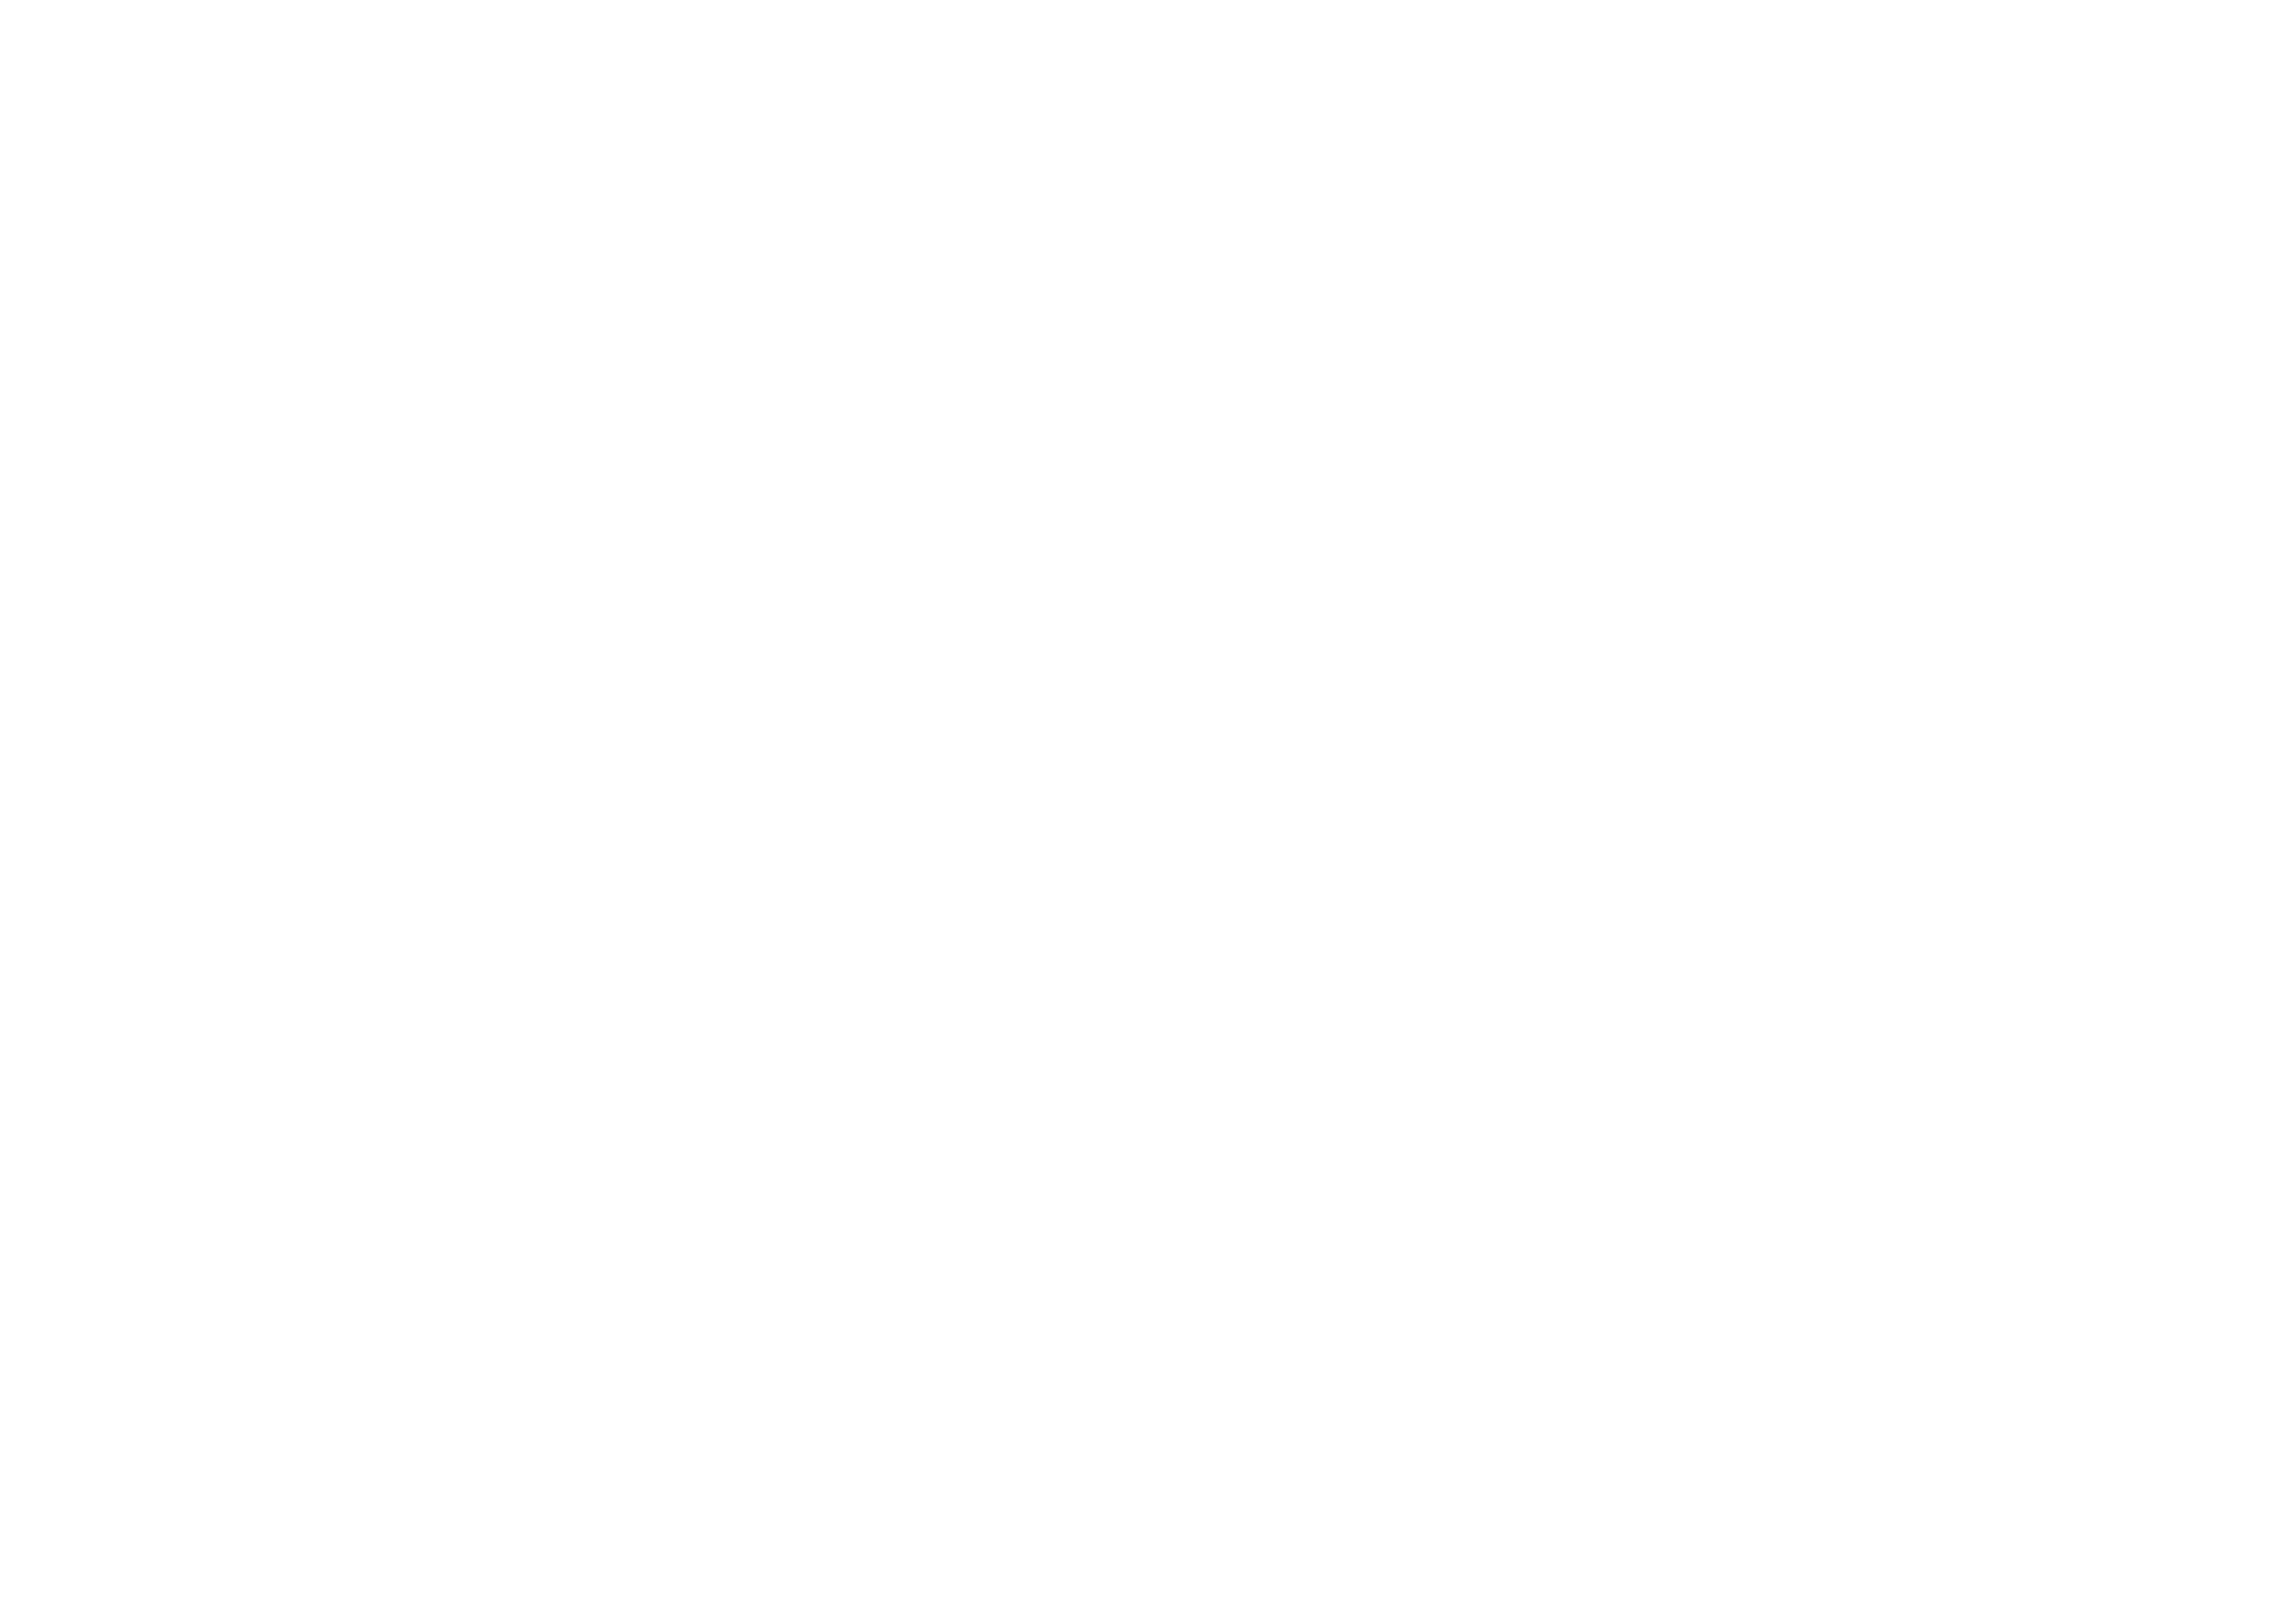 Branding client Inverness